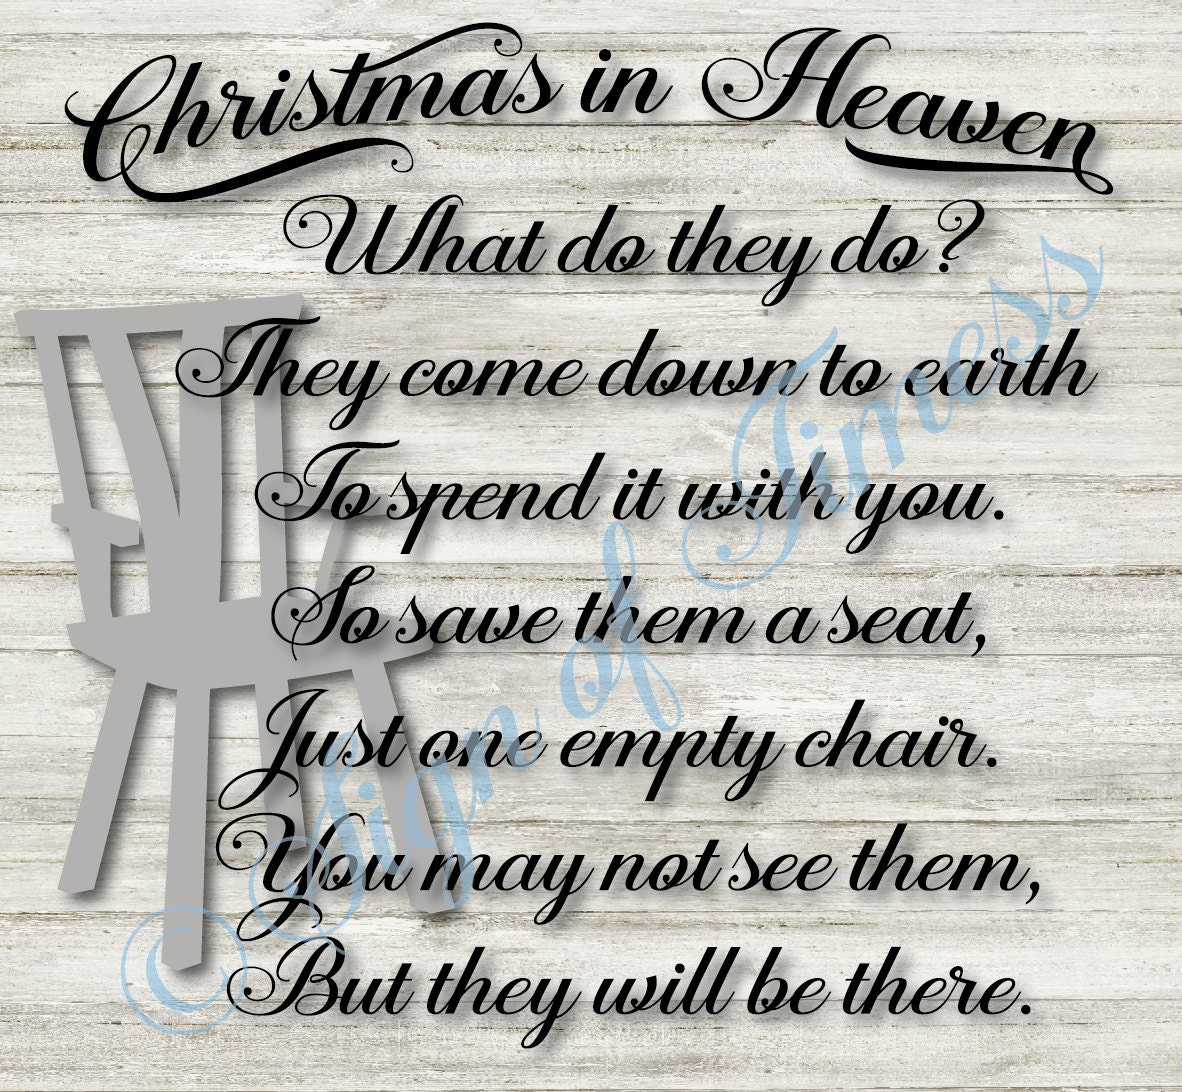 Christmas In Heaven Svg.Christmas In Heaven What Do They Do Christmas In Heaven